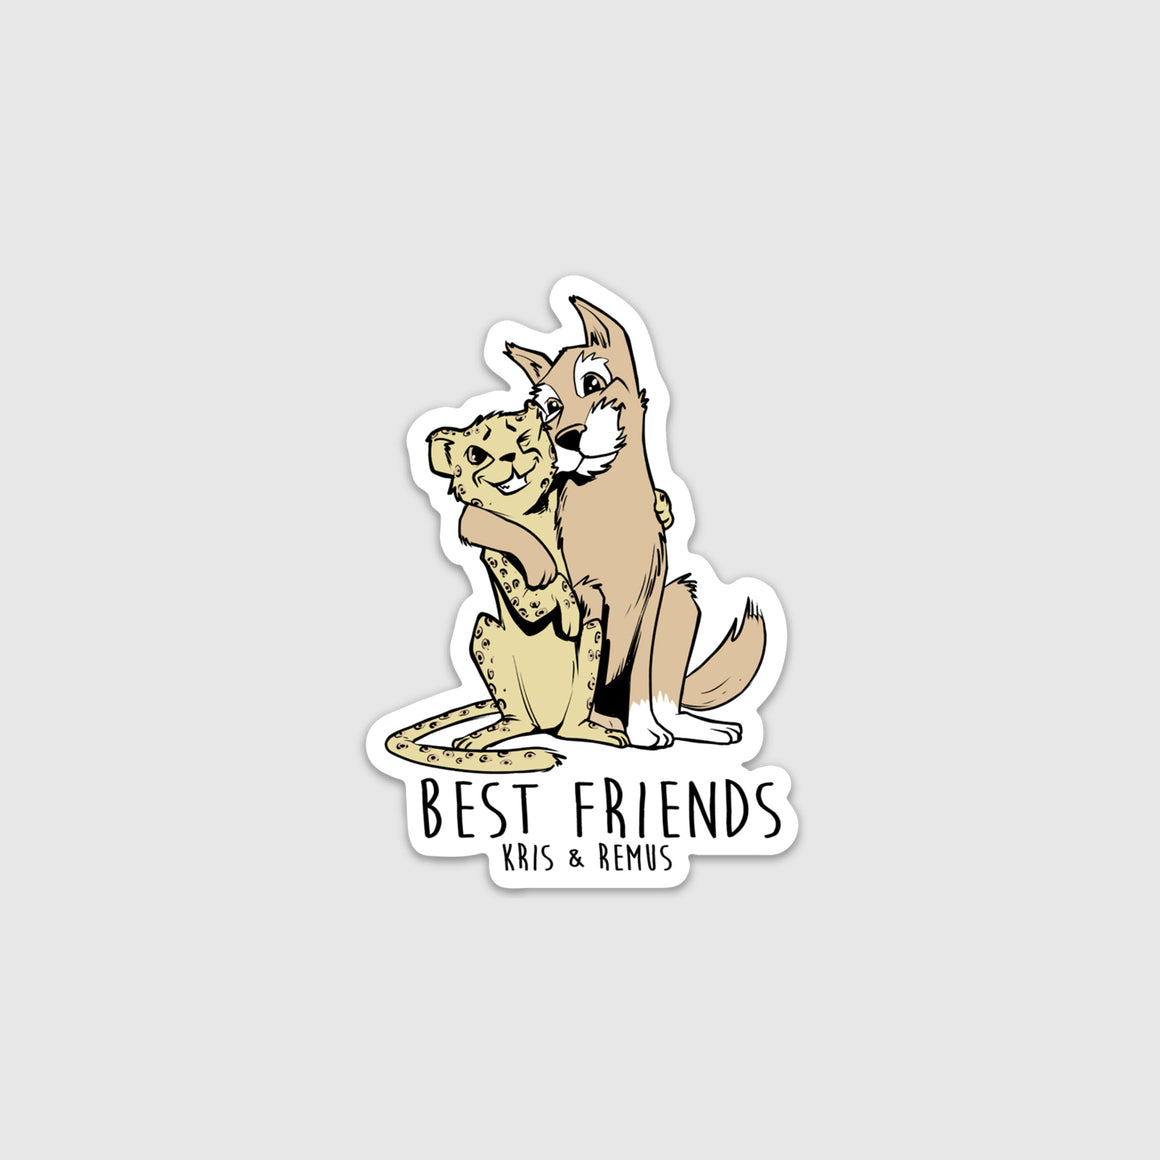 Kris & Remus Best Friends Sticker